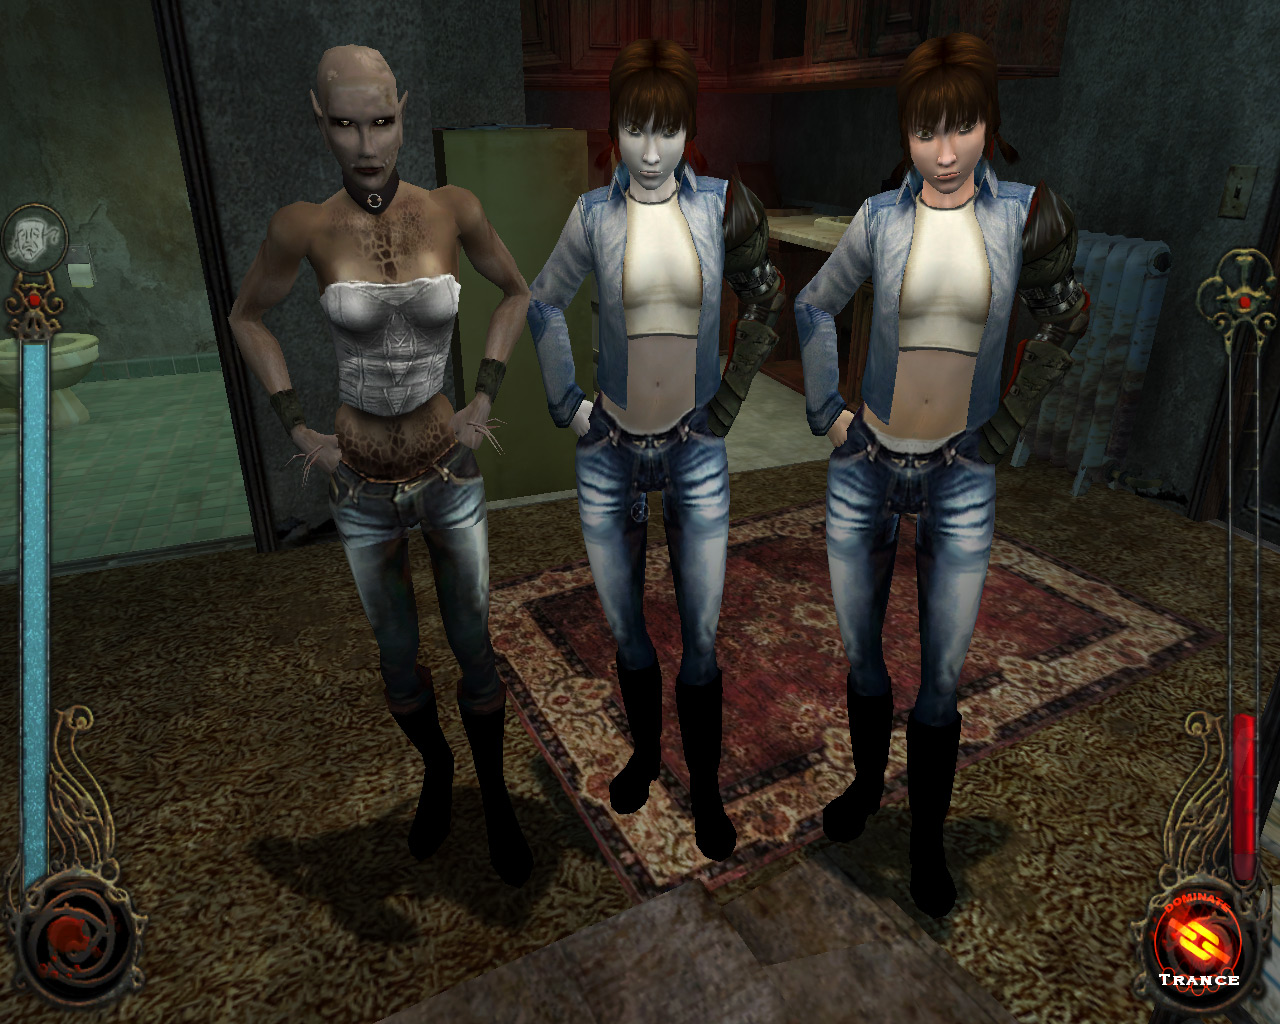 Vampire the masquerade sex mod pron download